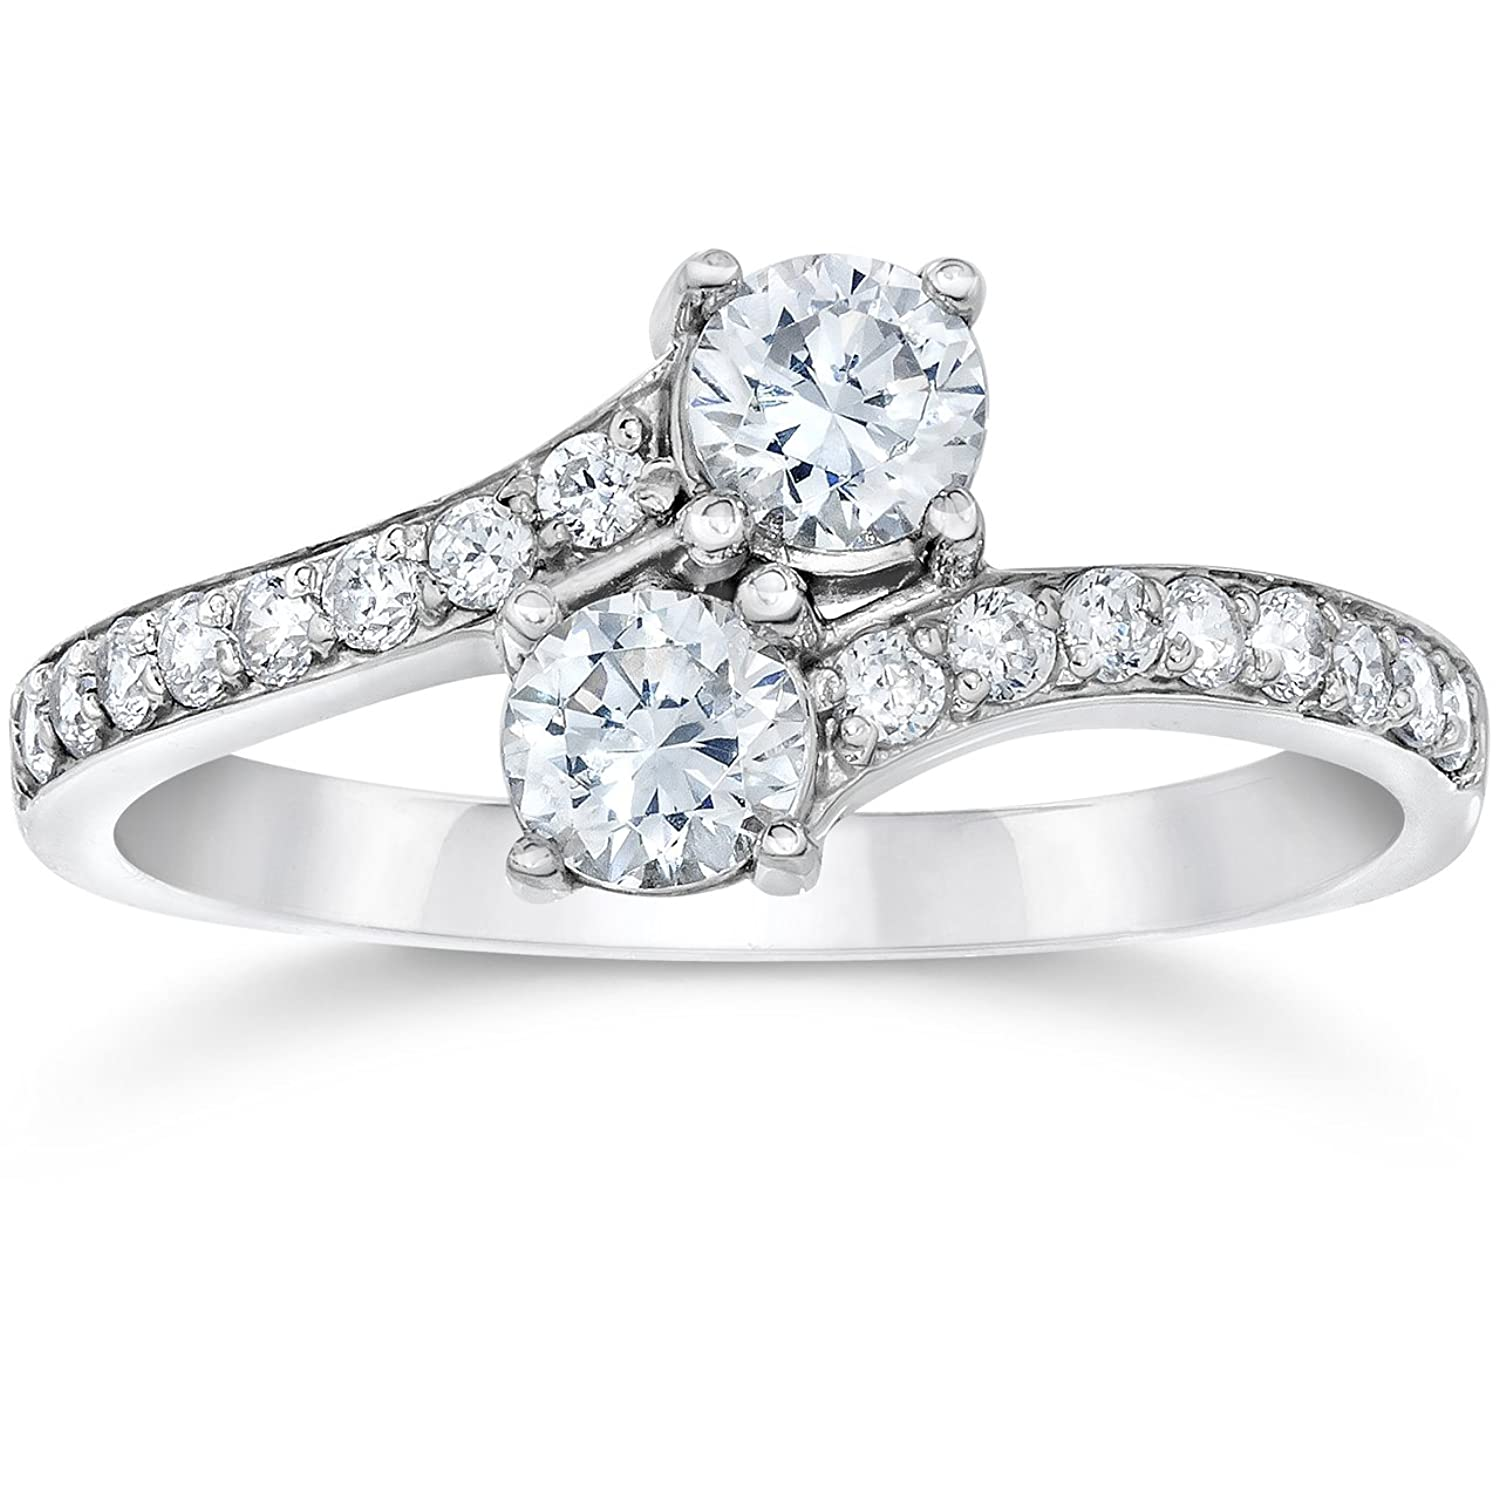 engagement rings celebrity of karat lovely ever ring diamonds by the auction most at carat size expensive new sold